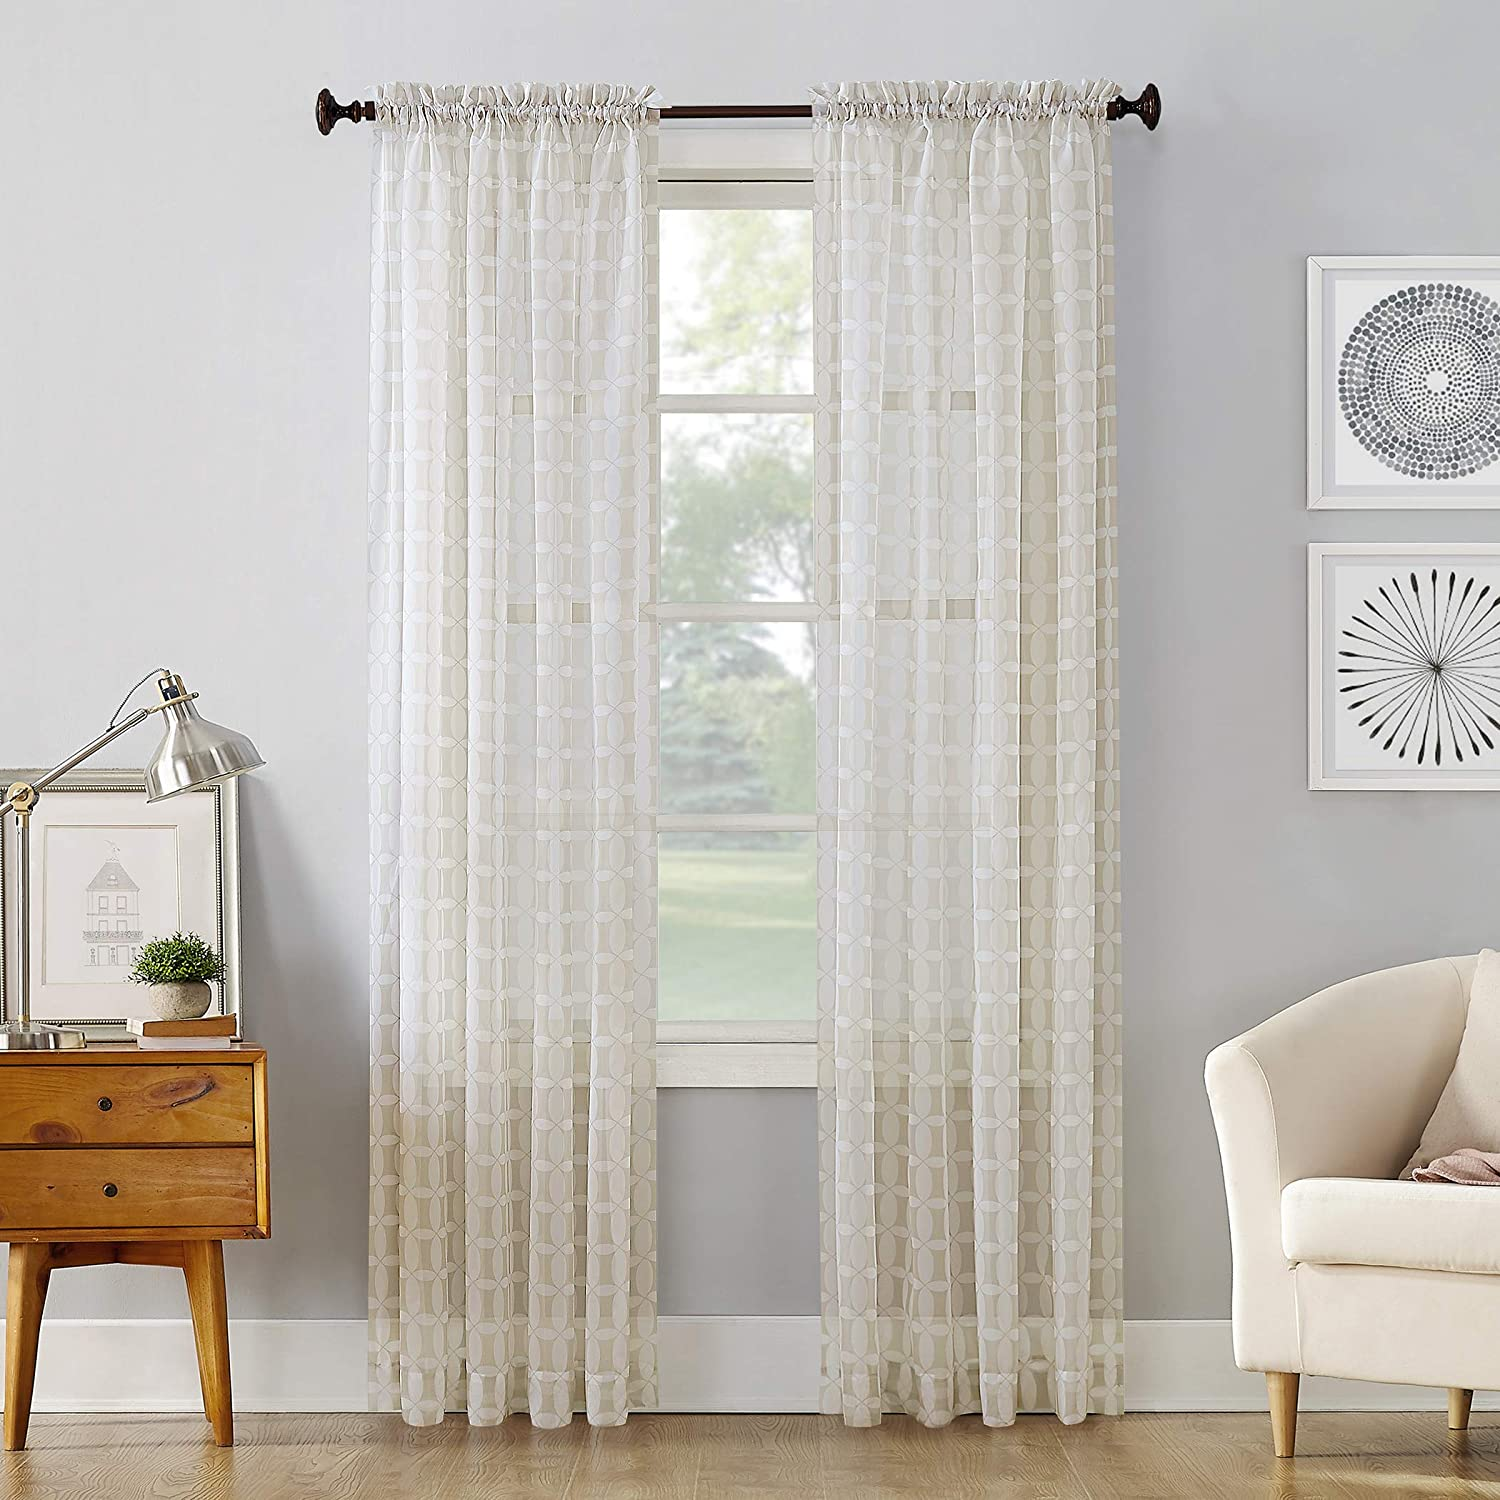 No 918 Miller Geometric Sheer Rod Pocket Curtain Panel 59 X 63 Taupe Home Kitchen